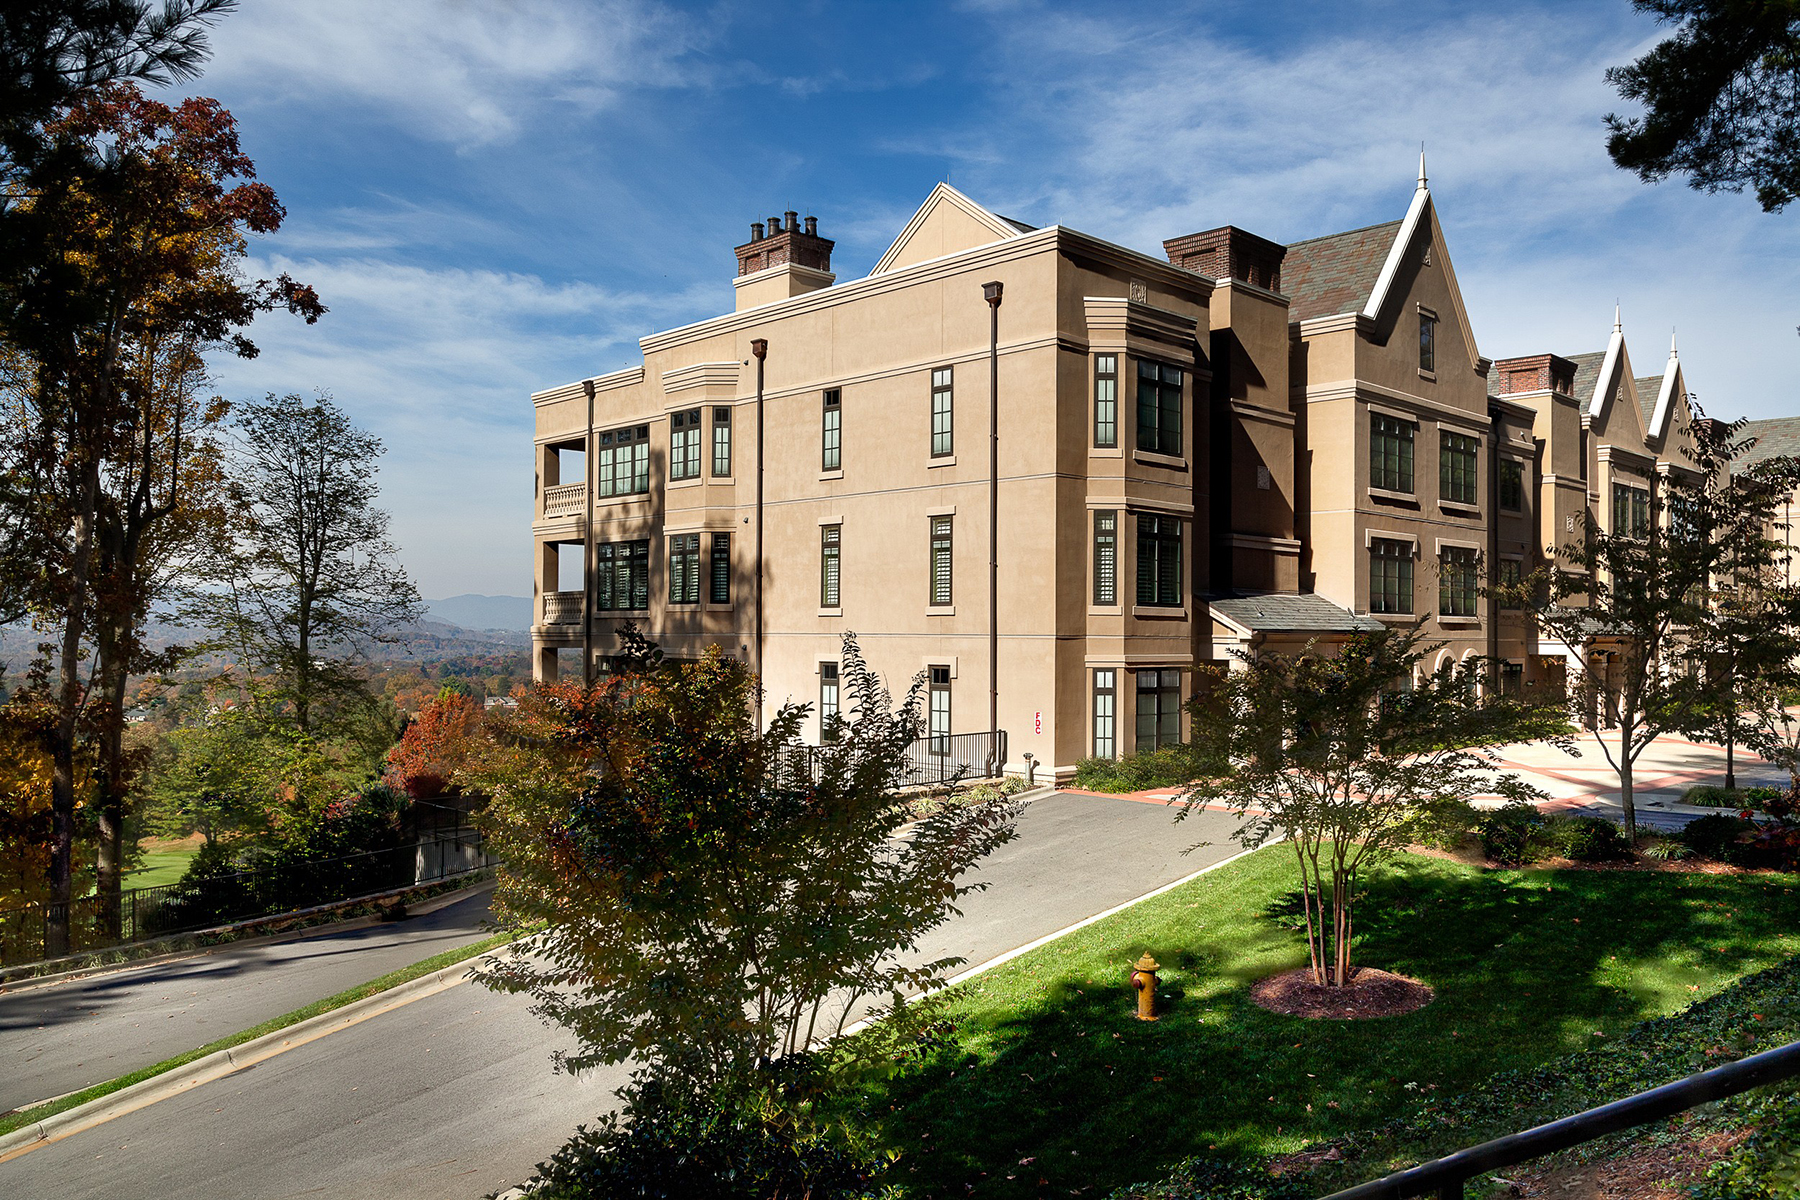 Condominium for Sale at THE FITZGERALD 288 Macon Ave 305, Asheville, North Carolina 28804 United States